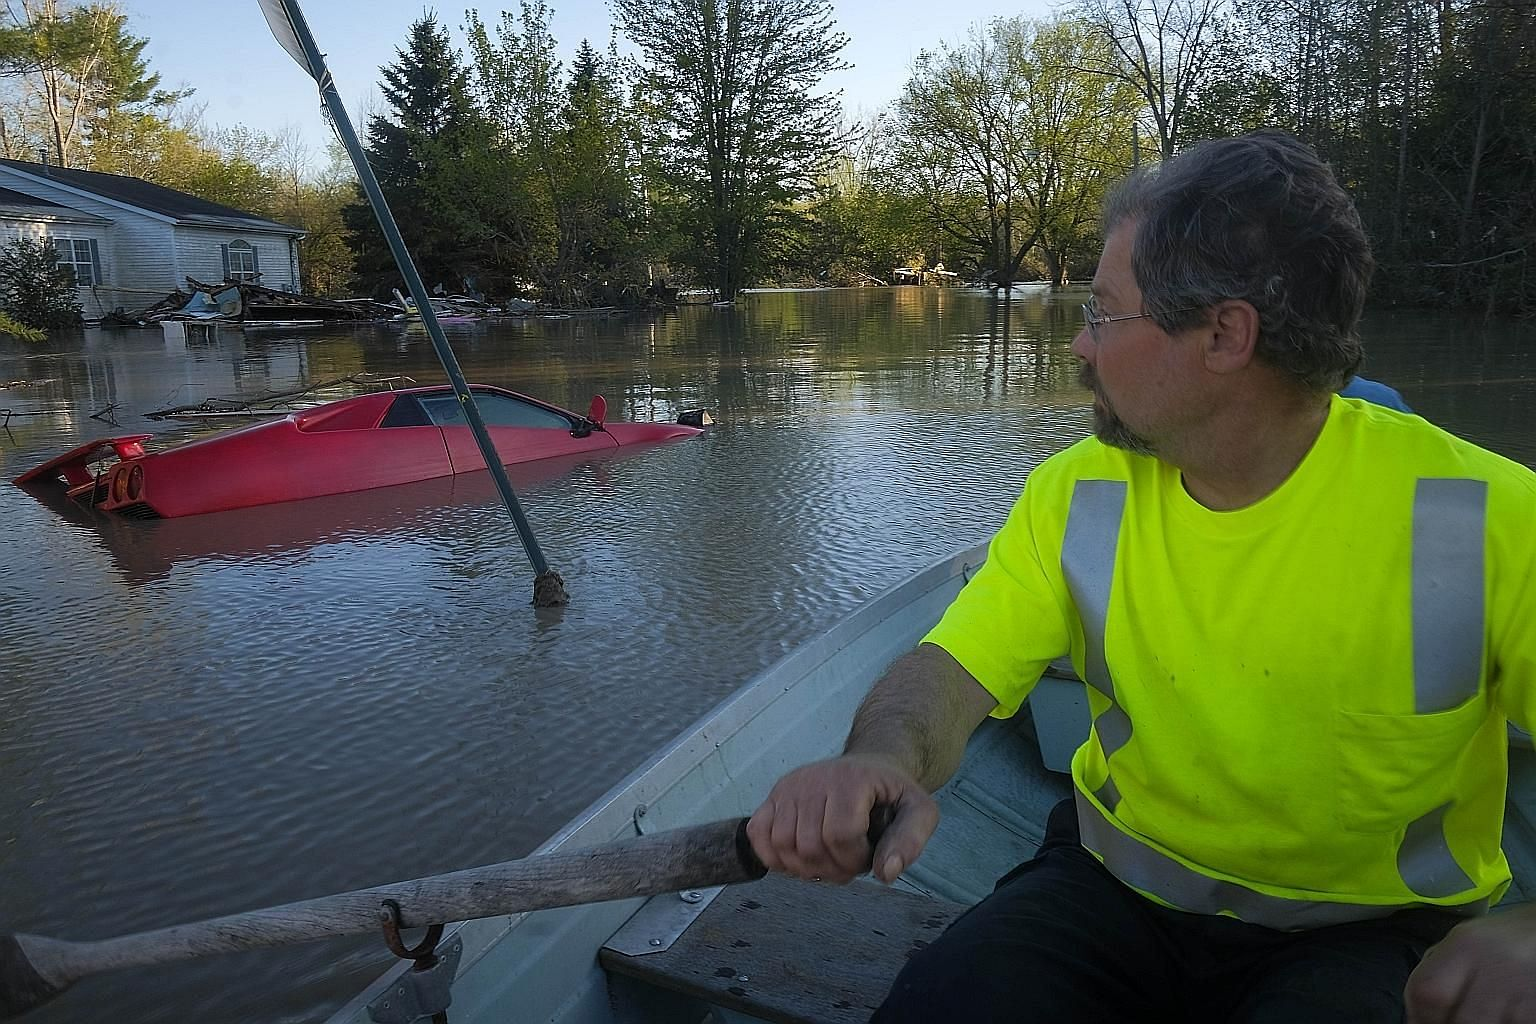 A resident of Sanford village in Midland inspecting the damage in his neighbourhood after floodwaters released by two dam failures submerged parts of the central Michigan town on Wednesday.